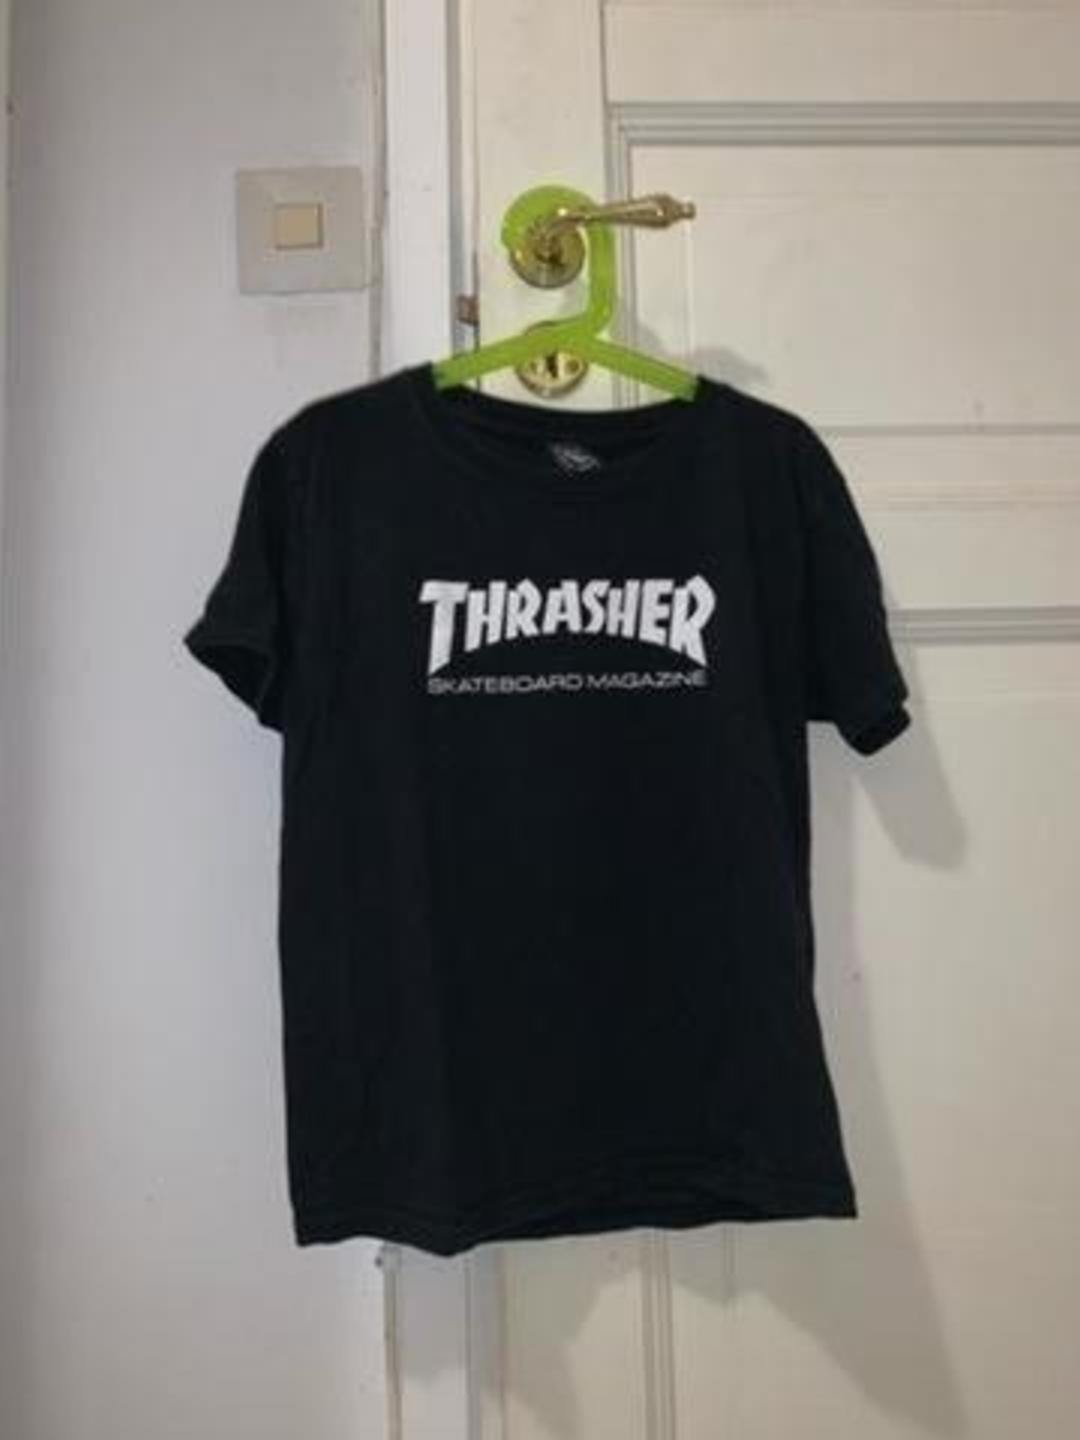 Damen tops & t-shirts - THRASHER photo 1